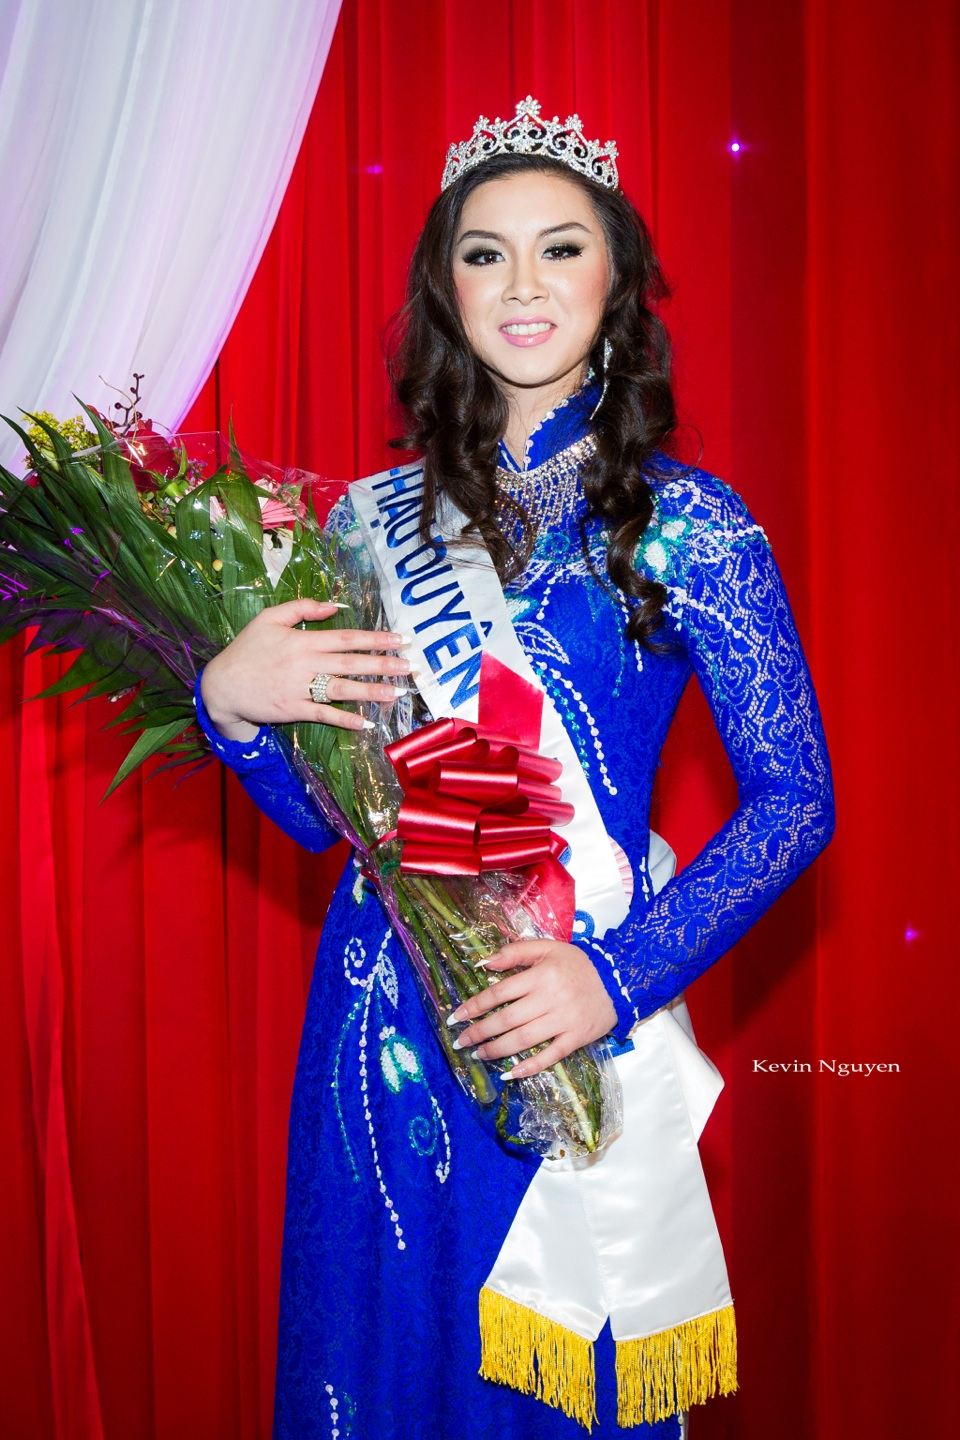 Pageant Day 2014 - Miss Vietnam of Northern California - San Jose, CA - Image 857